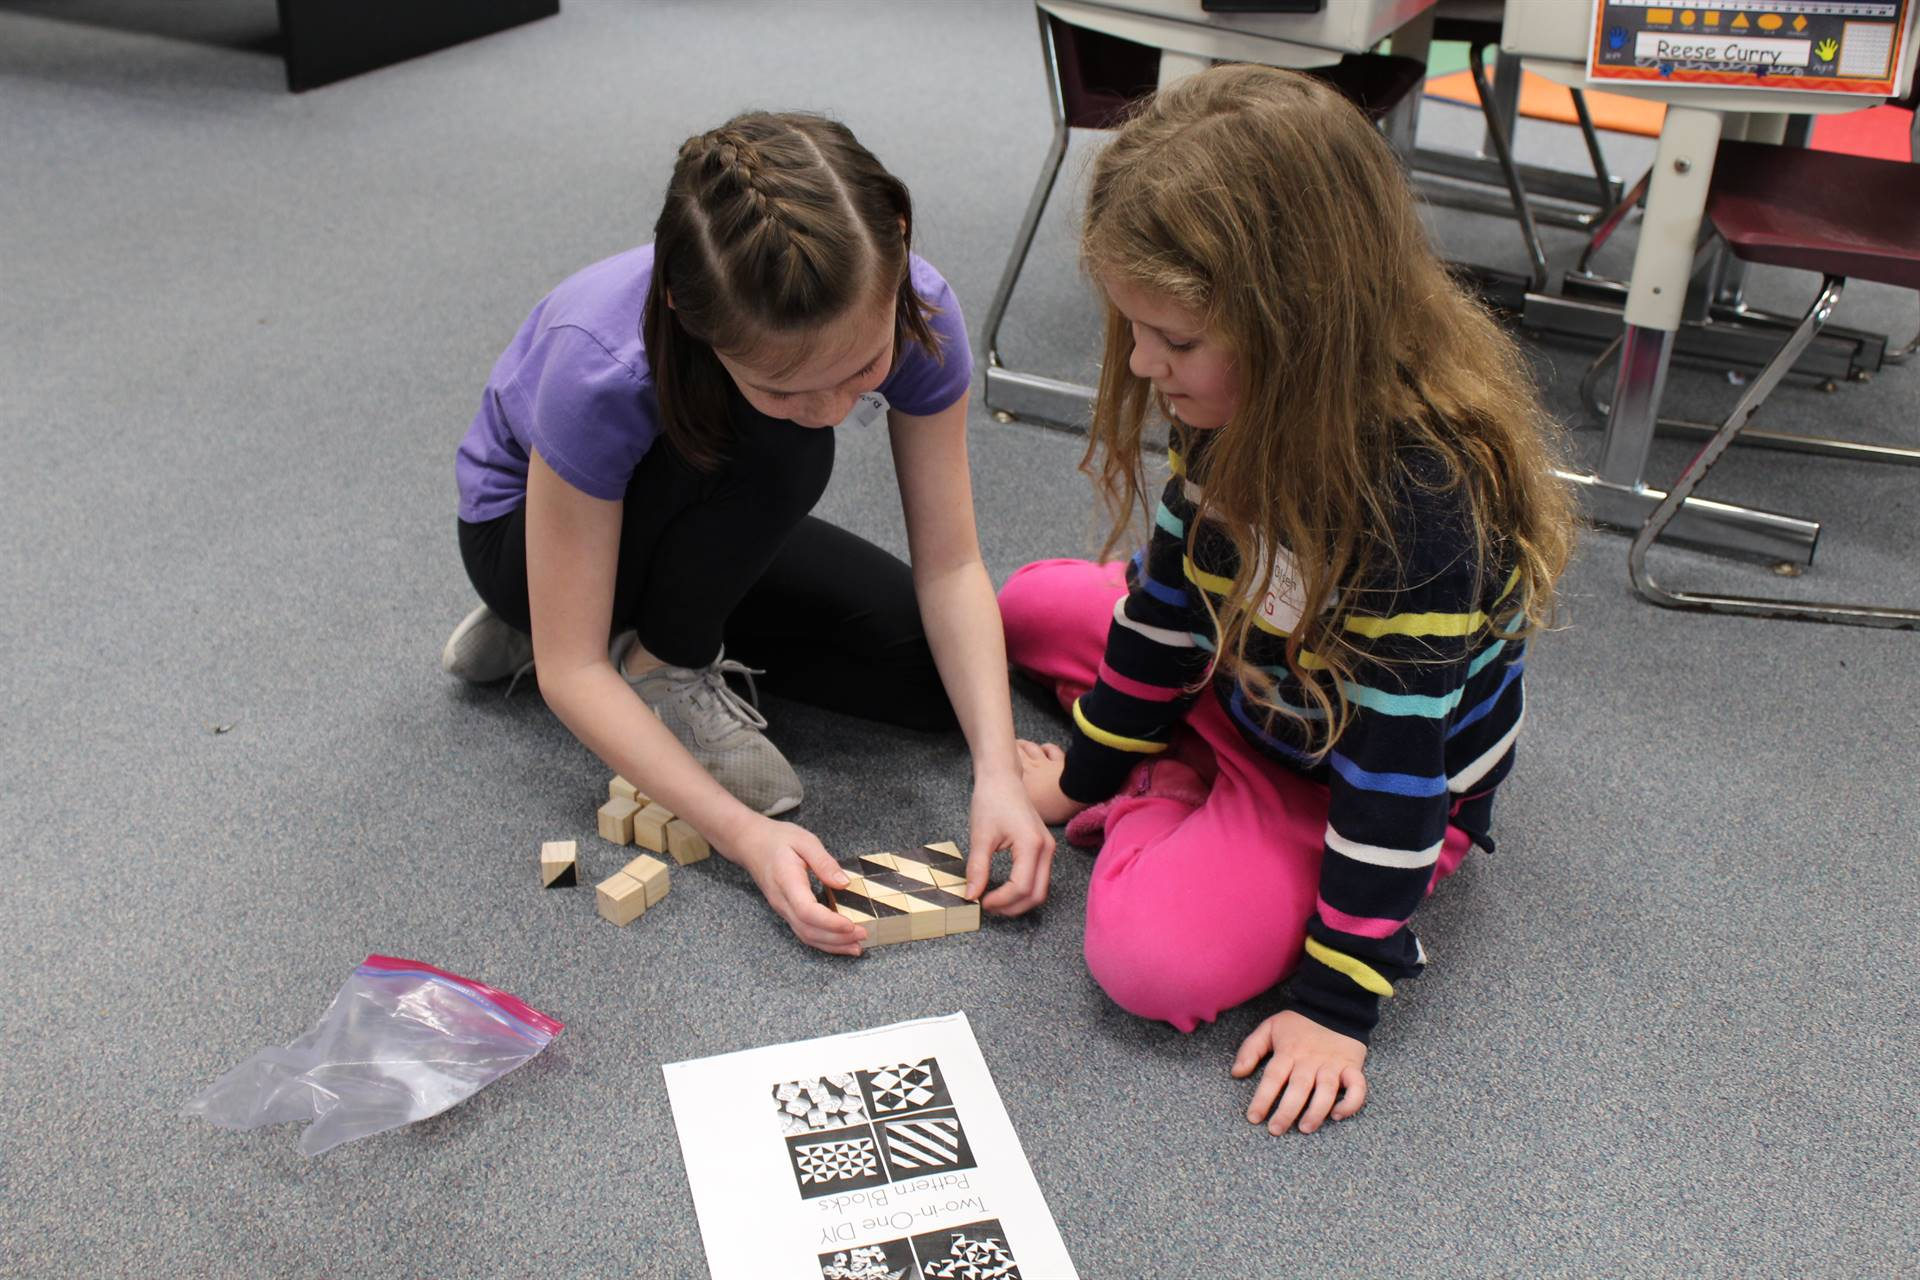 Two students arranging patterned blocks in a unique pattern